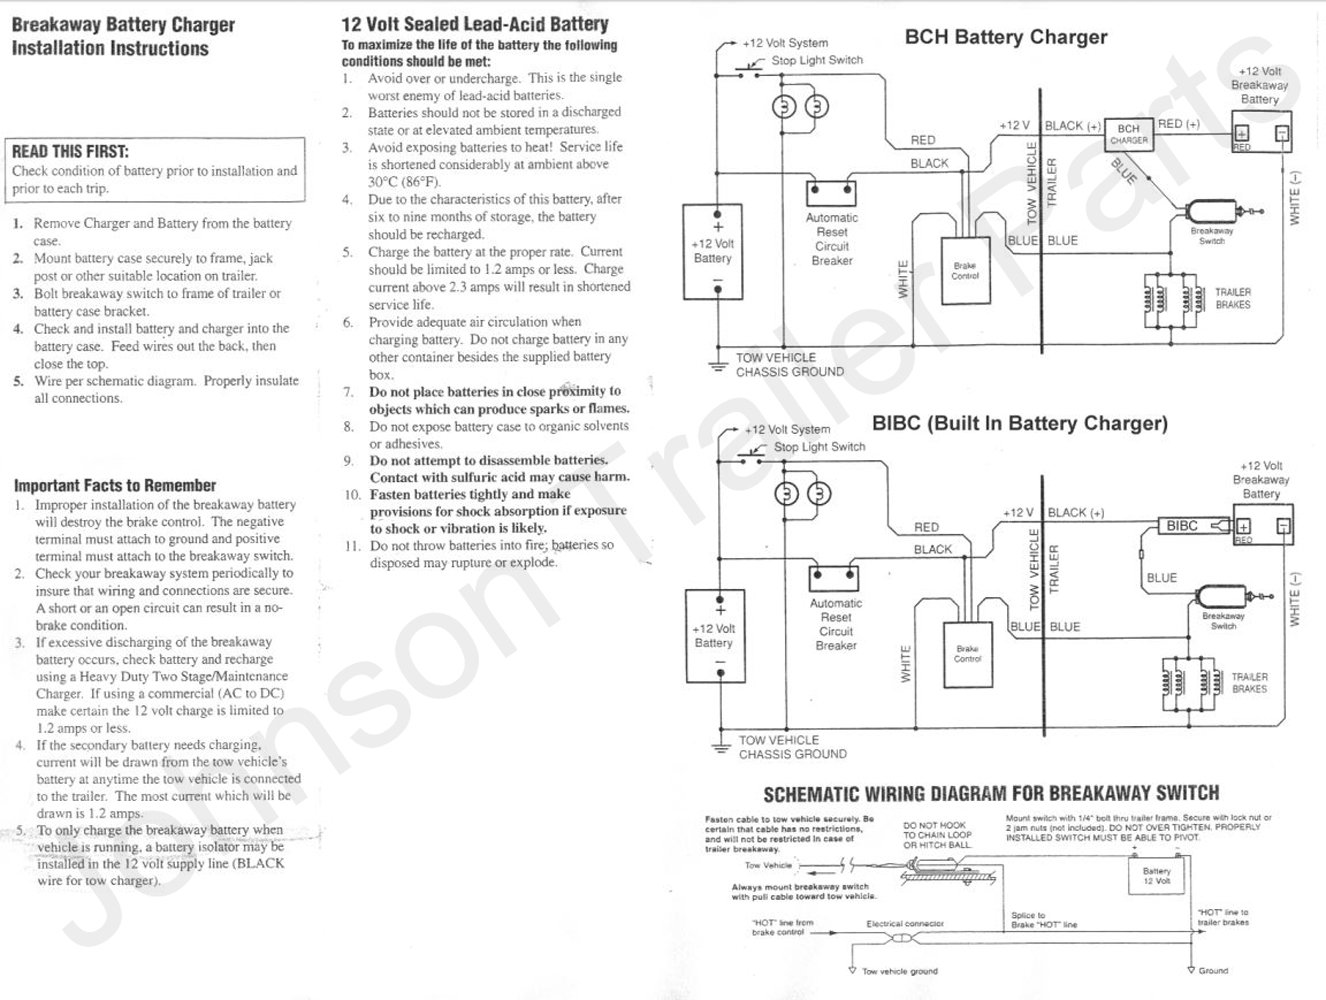 718PvzZr5ZL._SL1326_ amazon com trailer breakaway kit led readout breakaway switch trailer breakaway battery wiring diagrams at alyssarenee.co